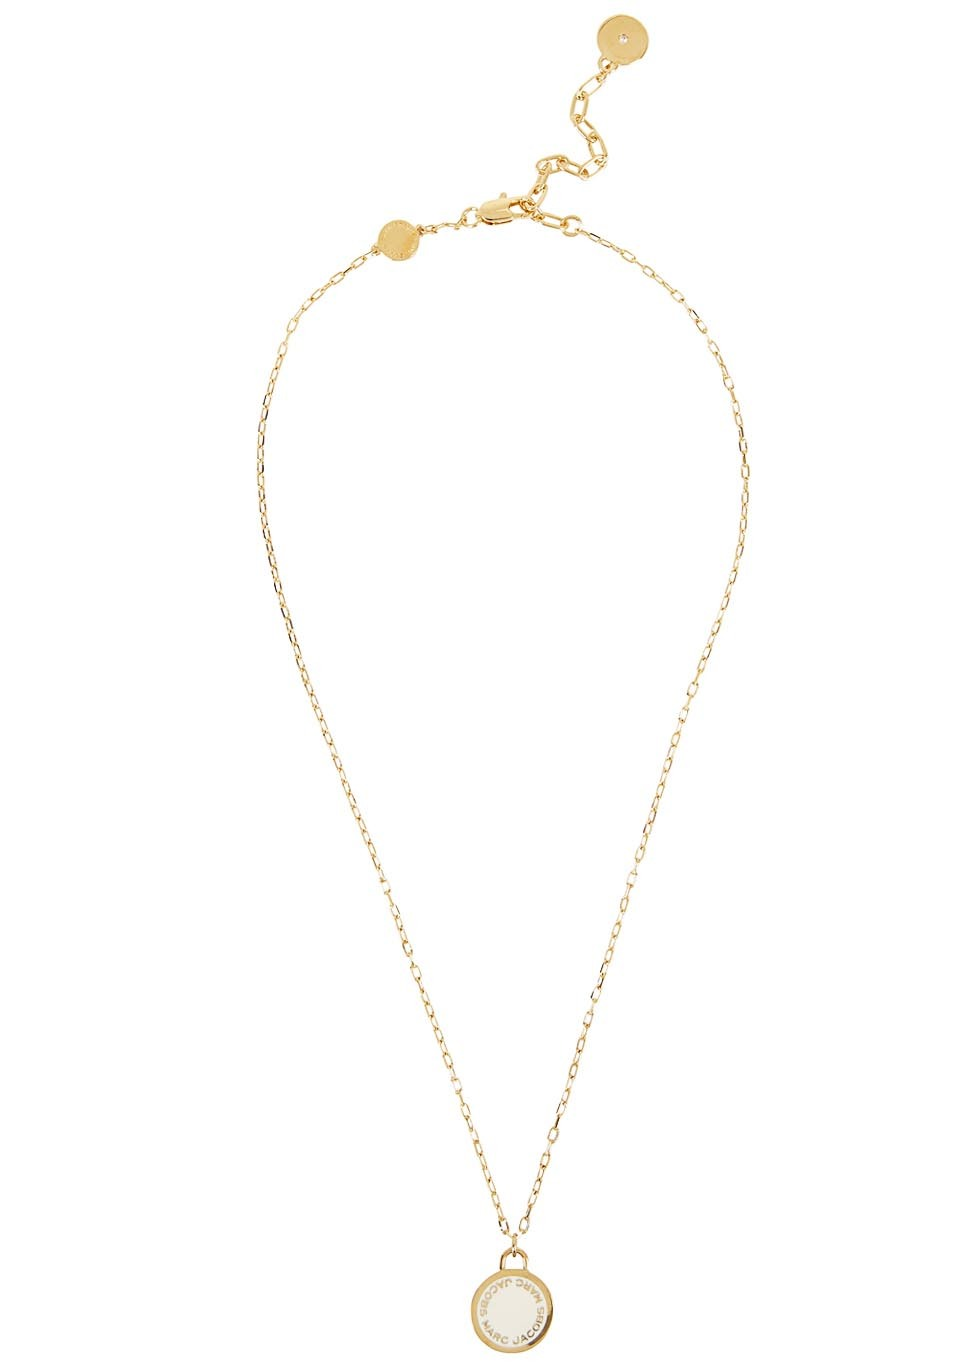 Logo Disc Gold Tone Necklace - predominant colour: gold; occasions: casual, work, creative work; style: pendant; length: mid; size: small/fine; material: chain/metal; finish: plain; embellishment: beading; season: s/s 2016; wardrobe: basic